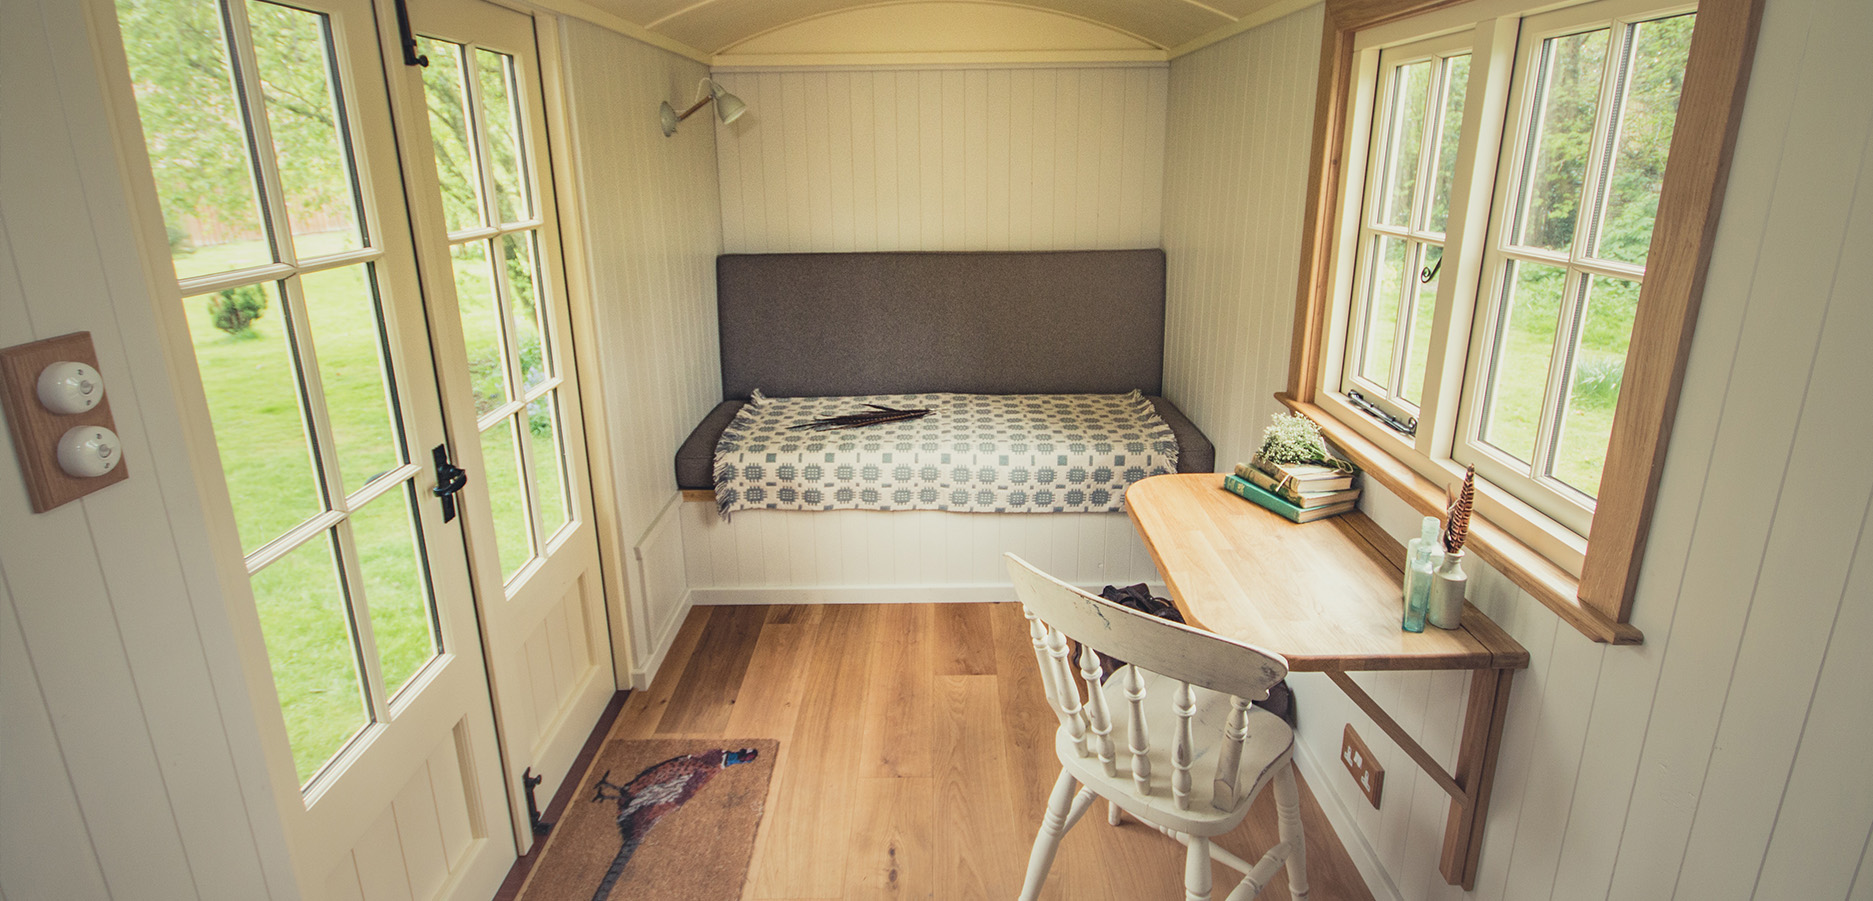 A versatile space in our custom shepherd's hut design